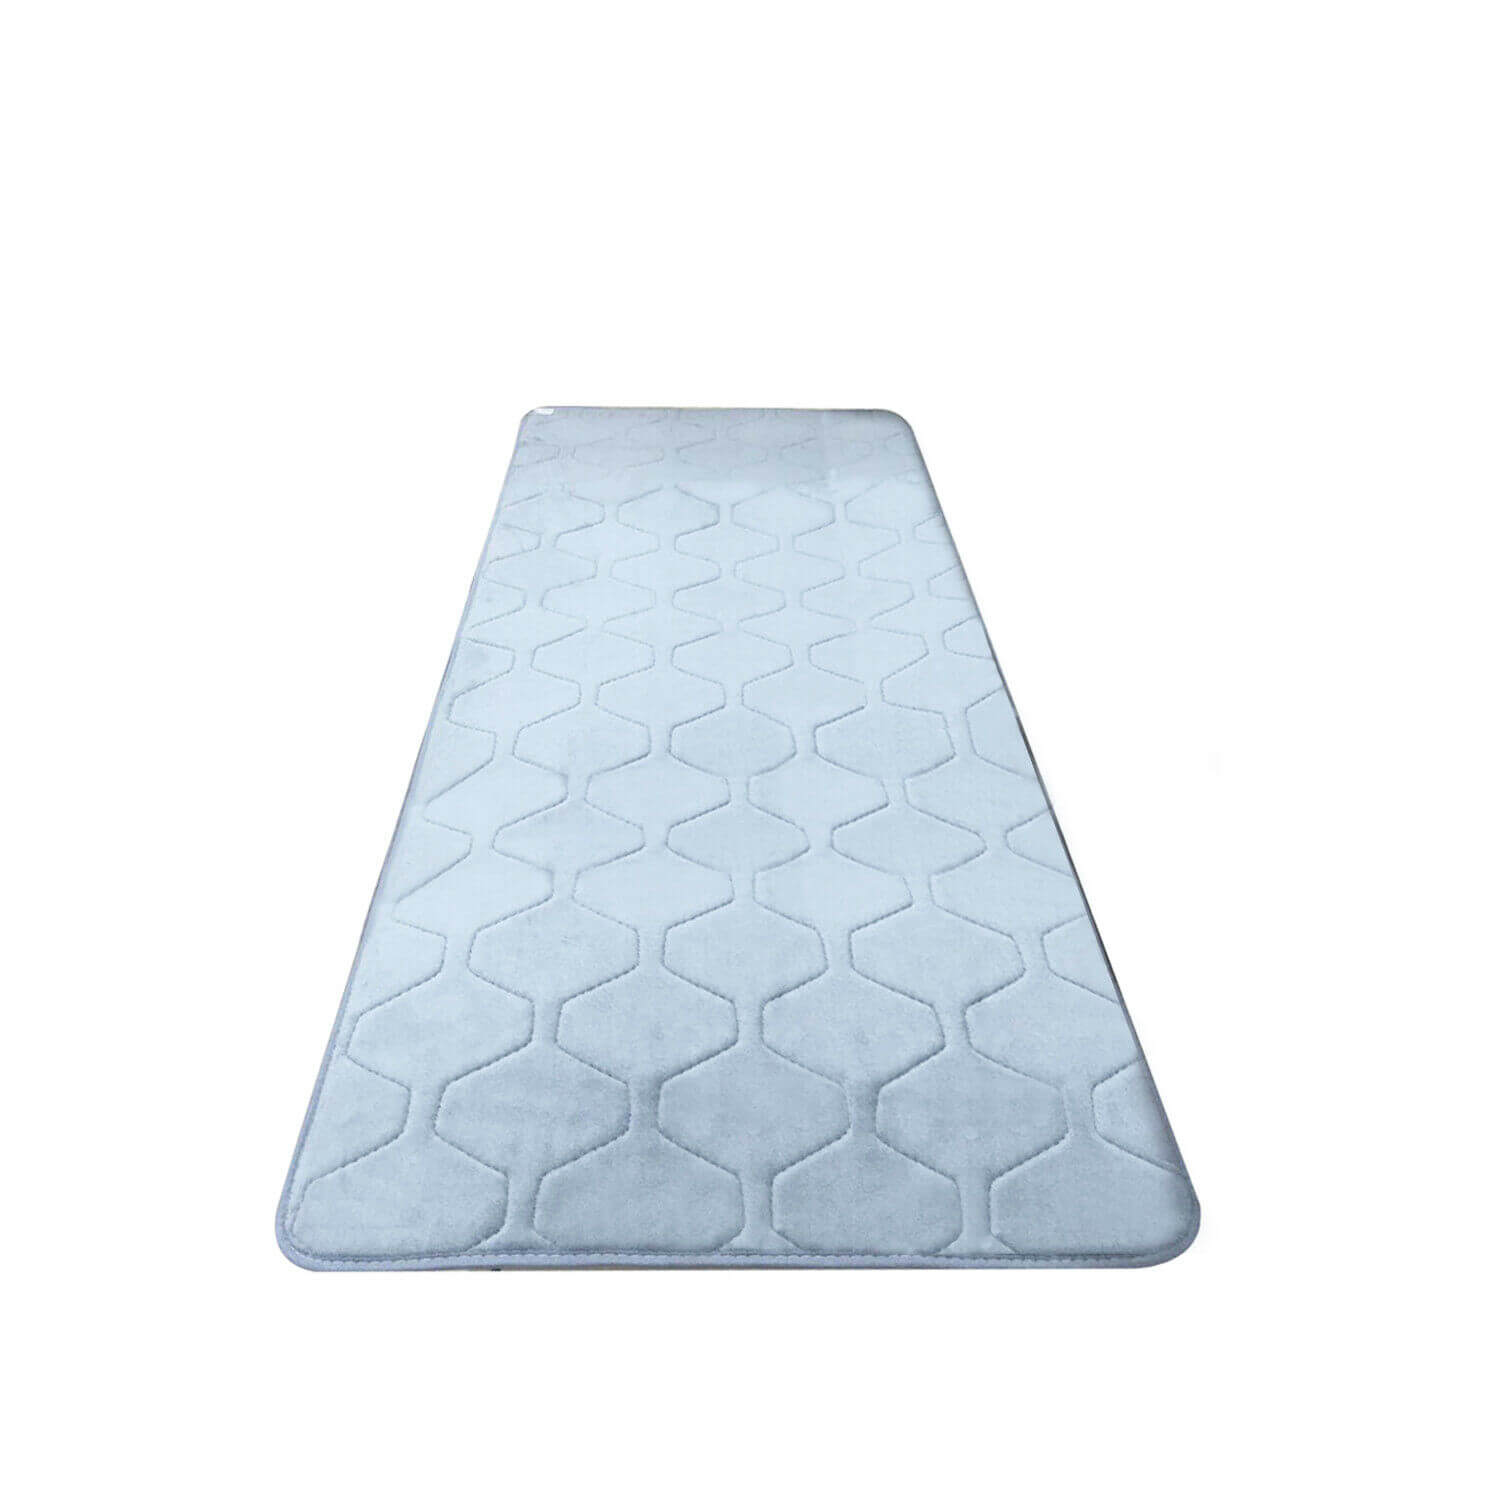 Home Bathroom Memory Foam Mat Pad Bathroom Floor Shower Rug Non-slip Carpet AU